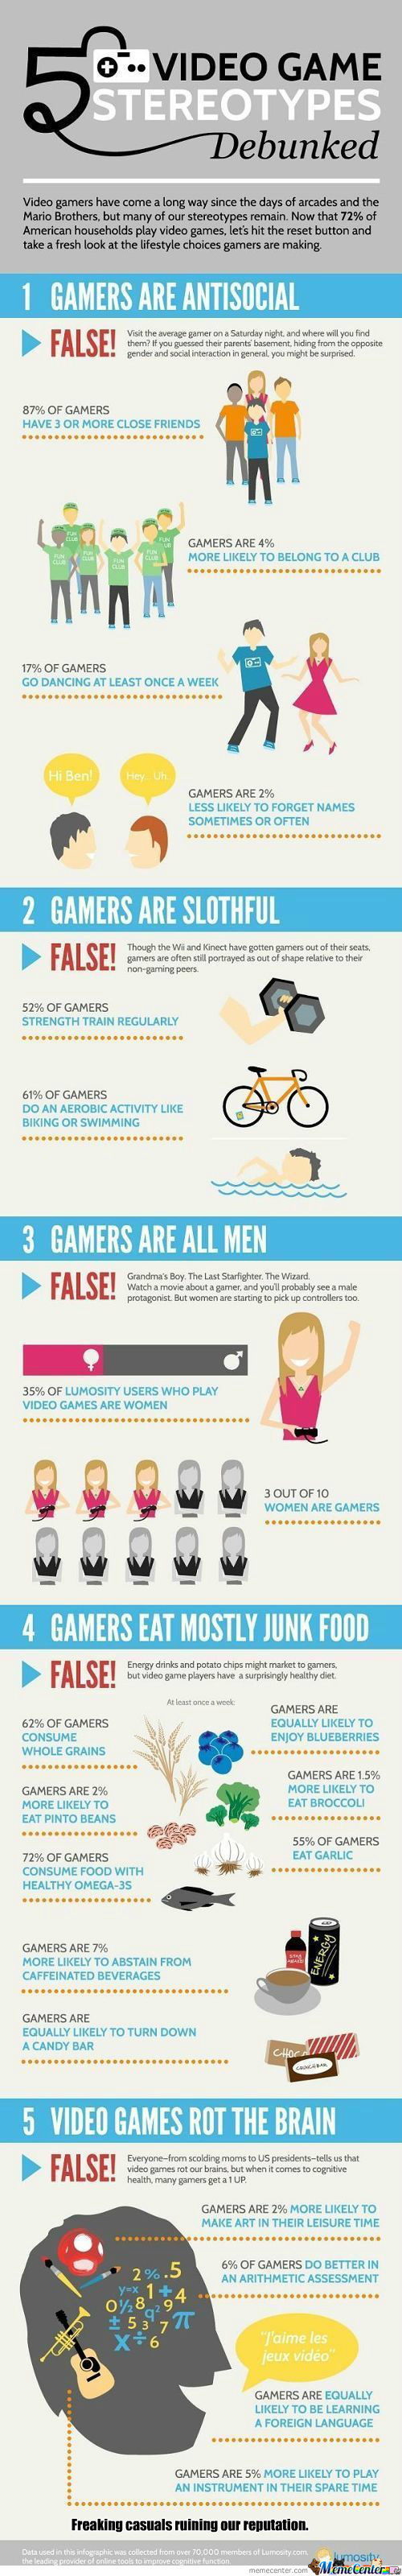 [RMX] Gaming Stereotypes Decoded